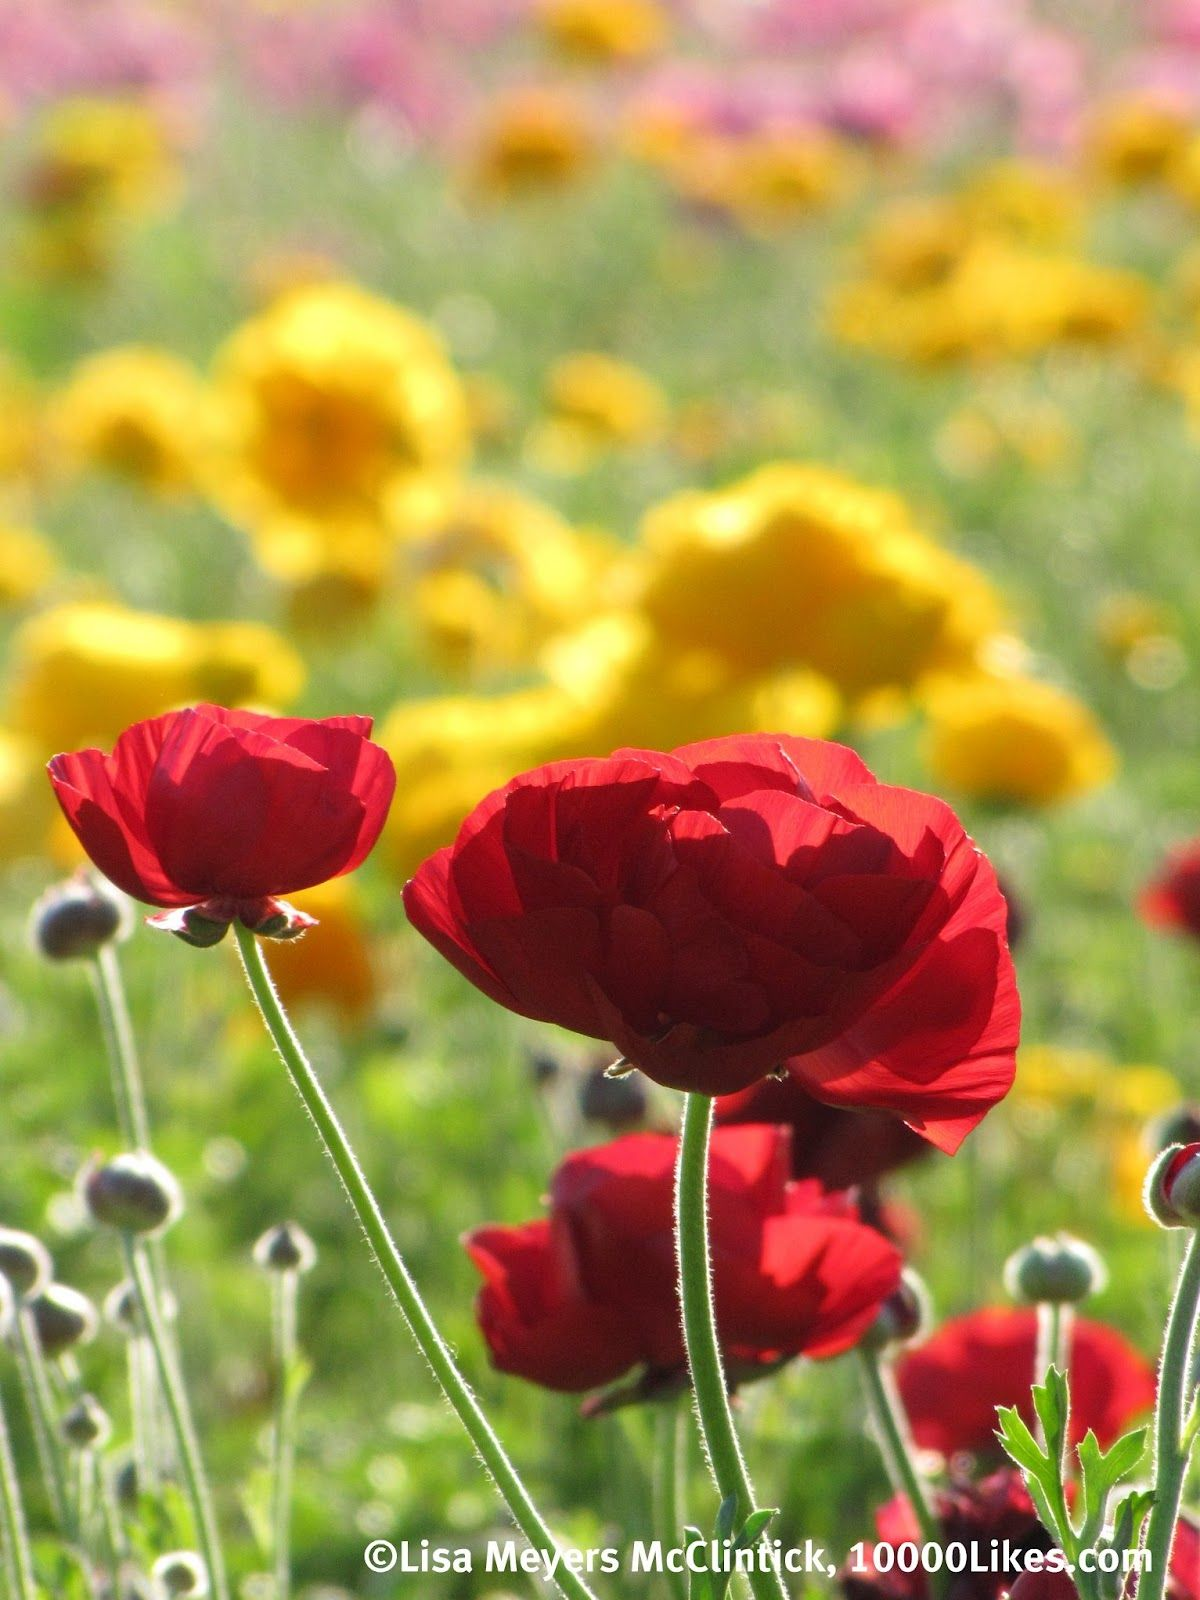 What Flowers Bloom In March In California Google Search California Flowers Flower Field Flowers